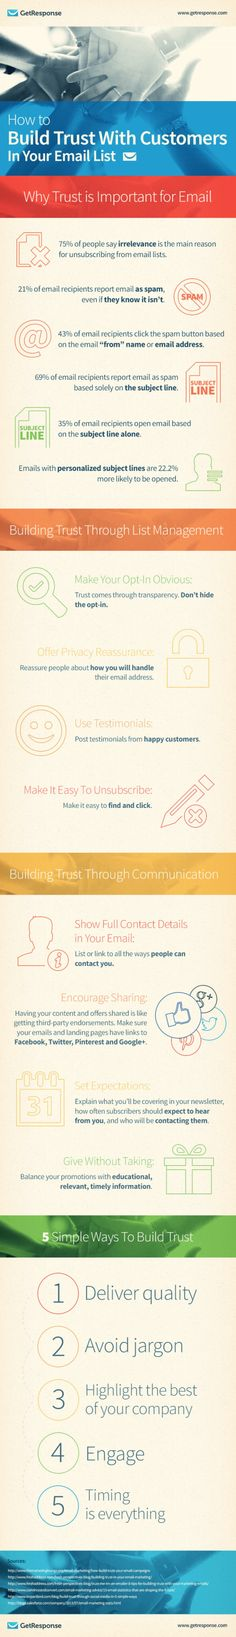 Better Email Marketing: Infographic - How To Build Trust With Customers In Your Email List Email Marketing Software, Marketing Automation, Marketing Program, Inbound Marketing, Marketing Digital, Internet Marketing, Online Marketing, Content Marketing, Media Marketing